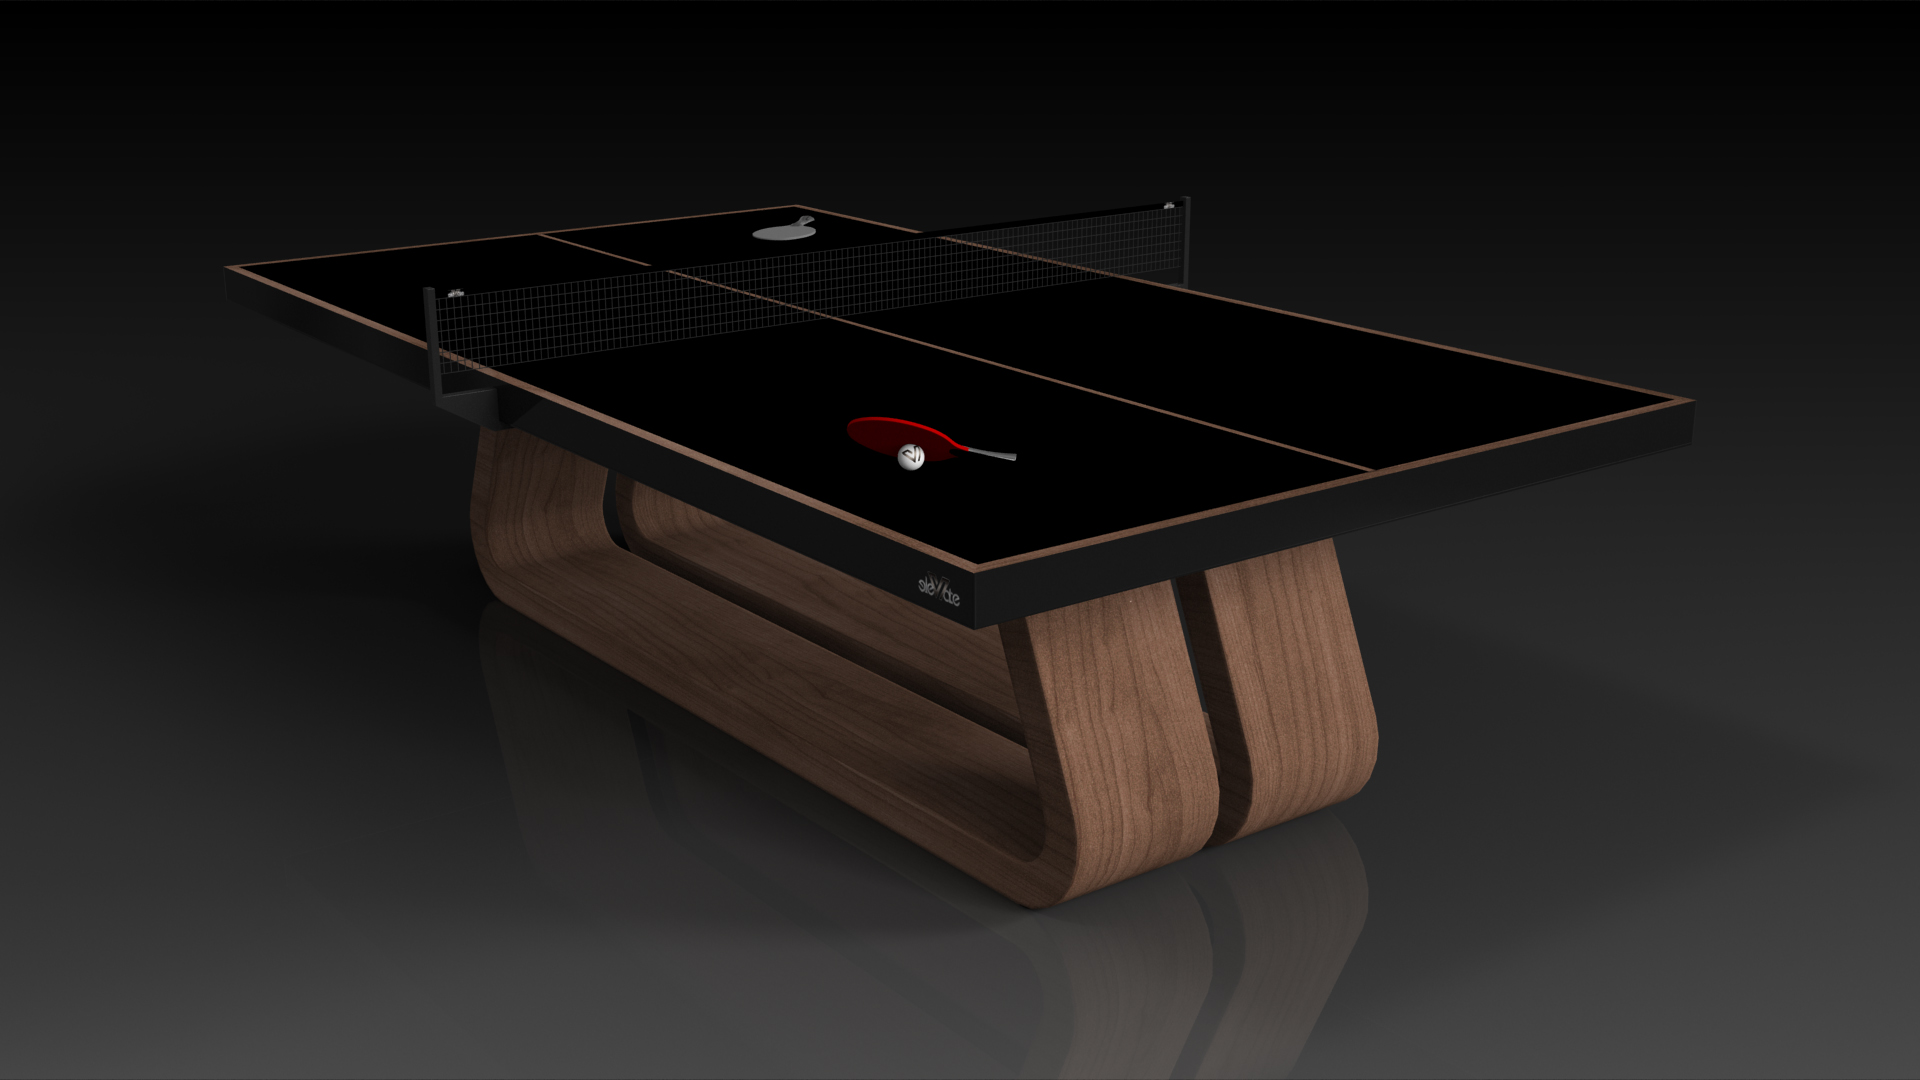 Elevate Customs Modern design Luge Ping Pong Table tennis walnut 4